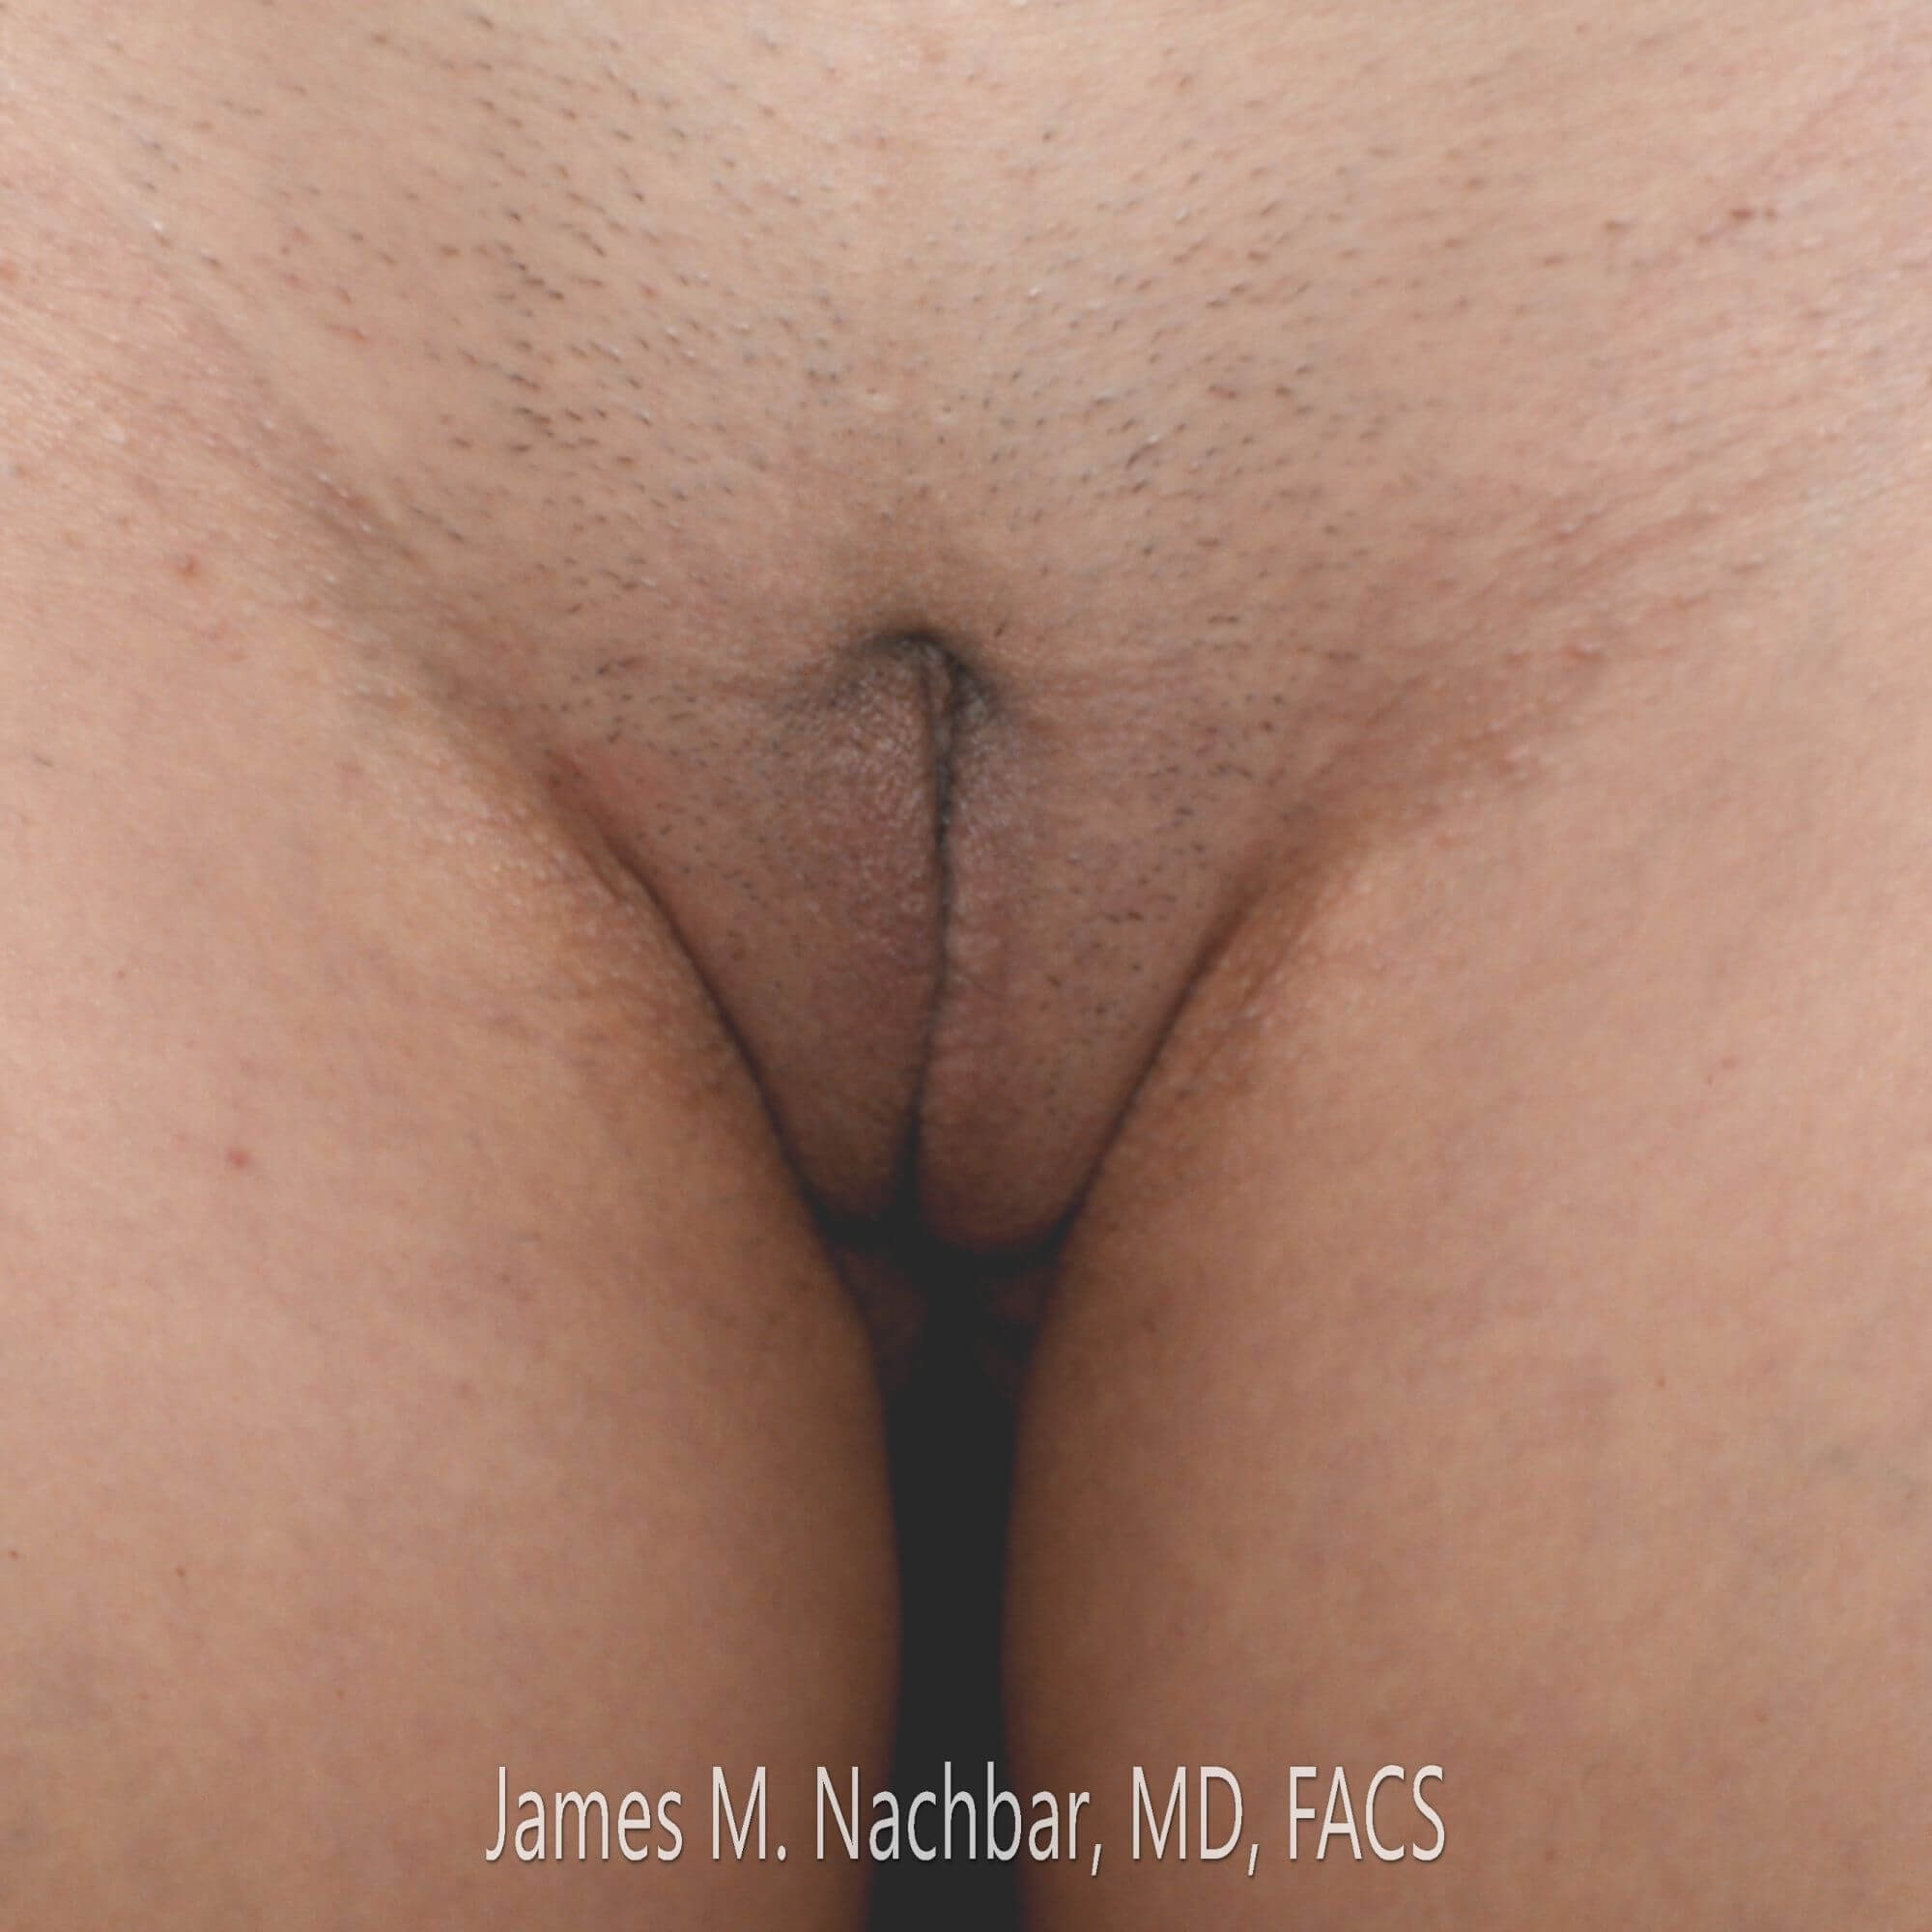 Wedge Labiaplasty, Front View 2 Months After